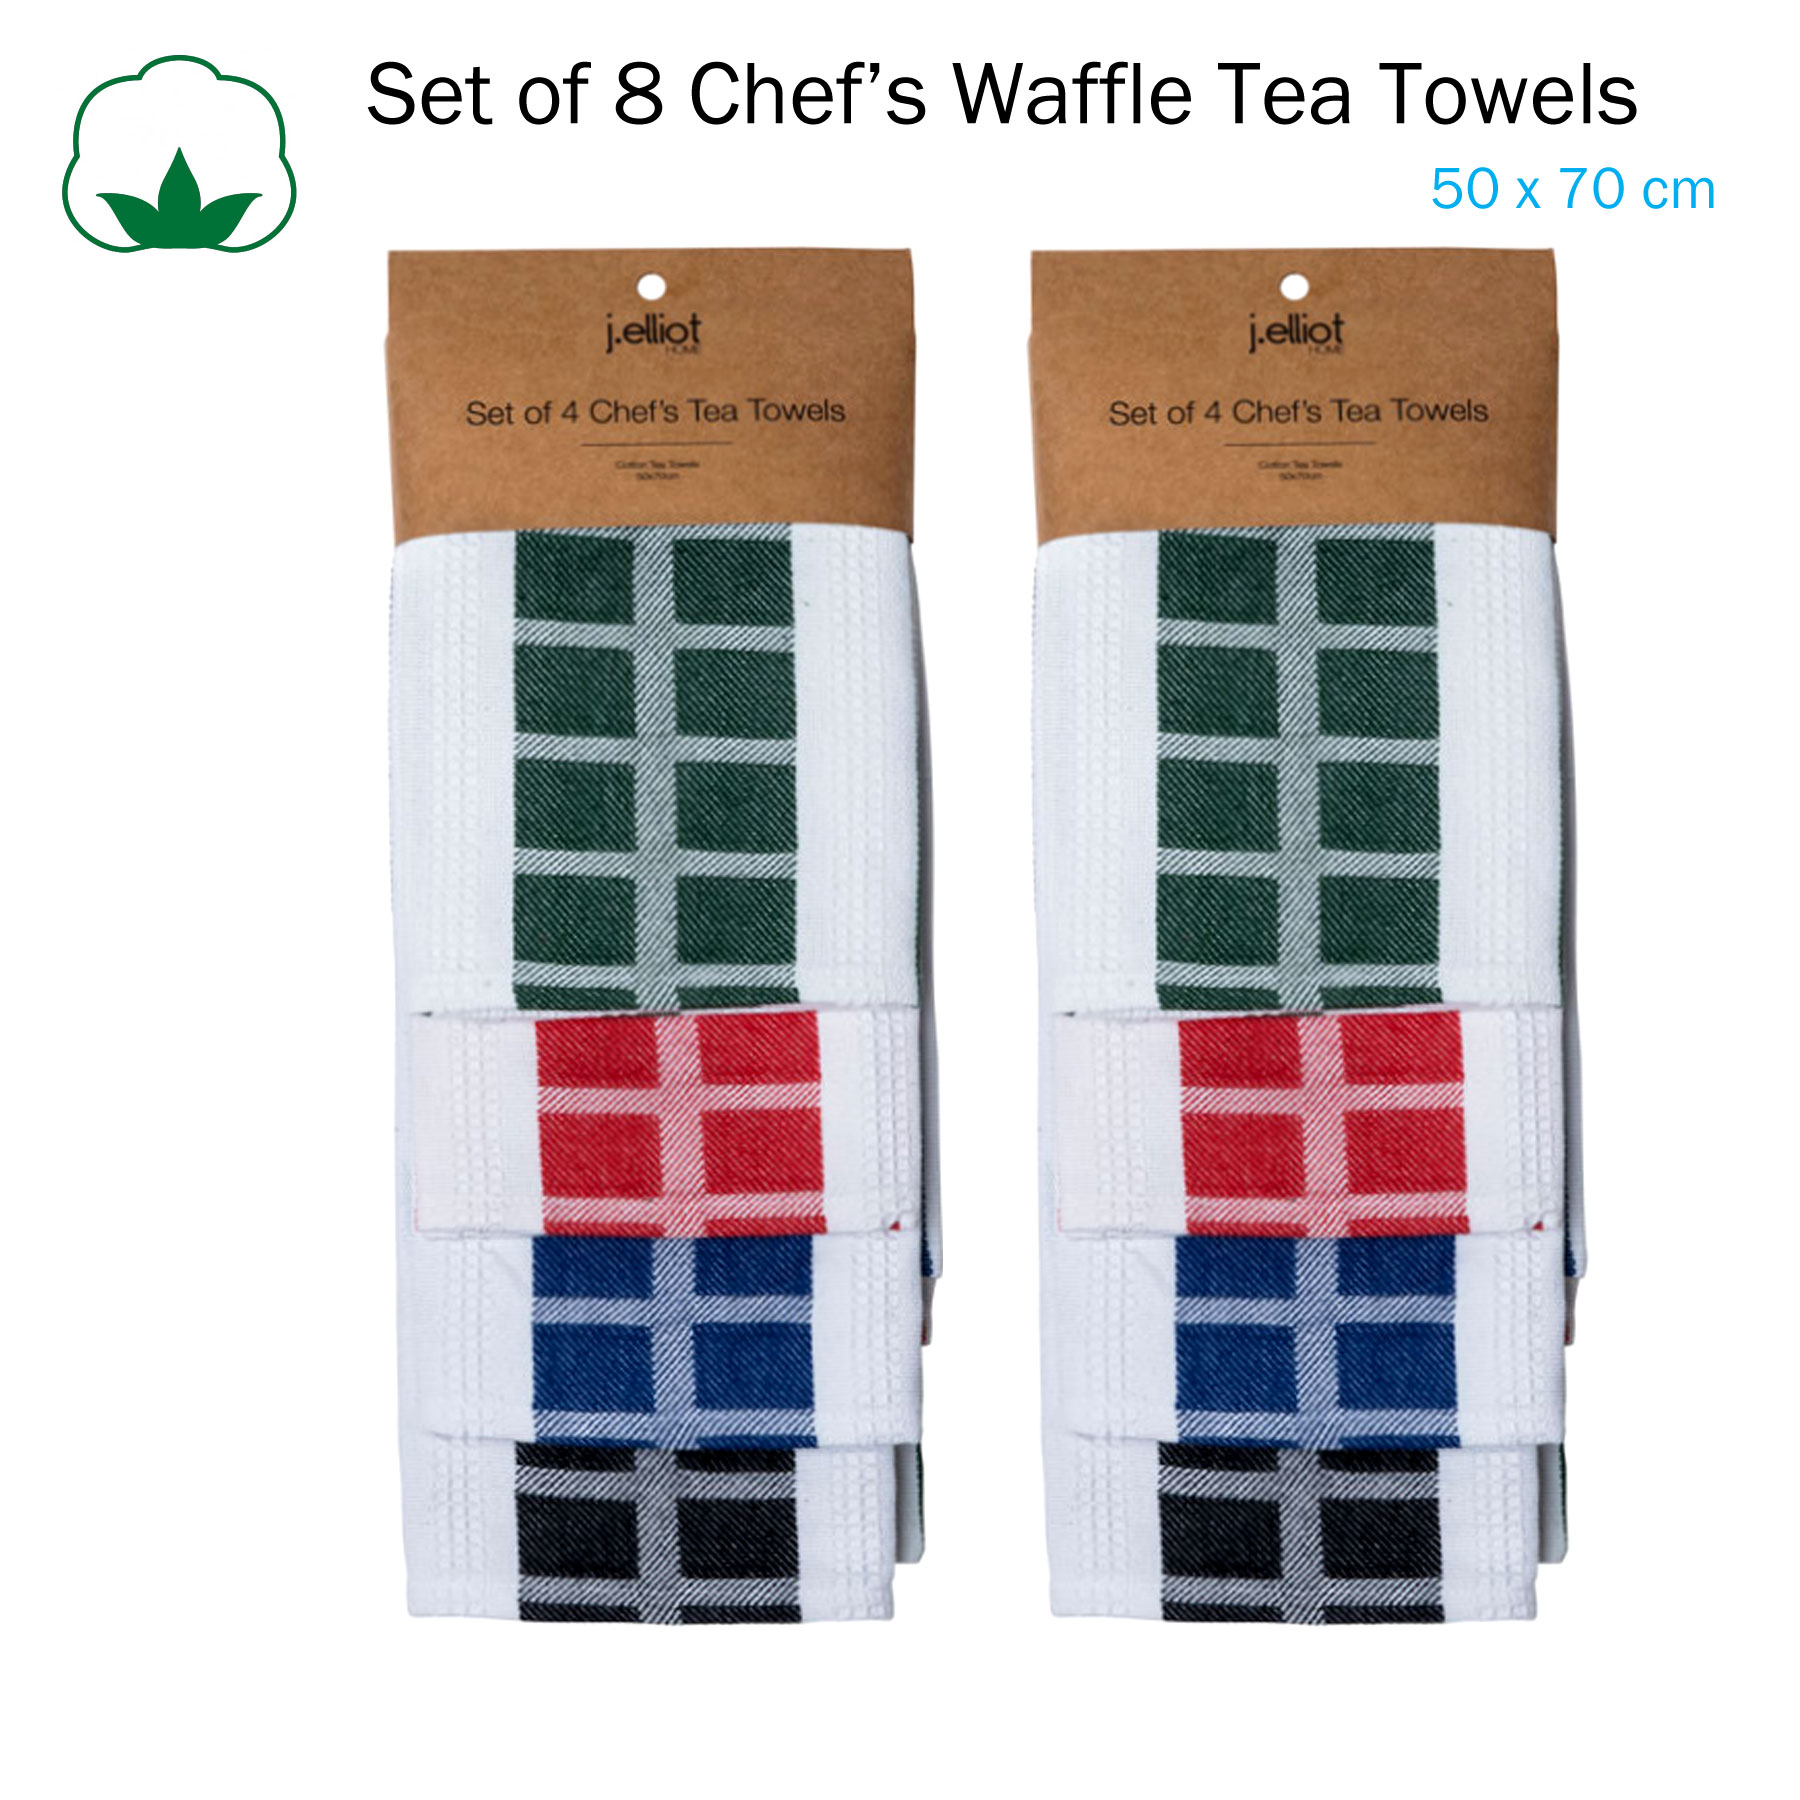 Set Of 8 Chef S Waffle Cotton Kitchen Tea Towels 50 X 70 Cm By J